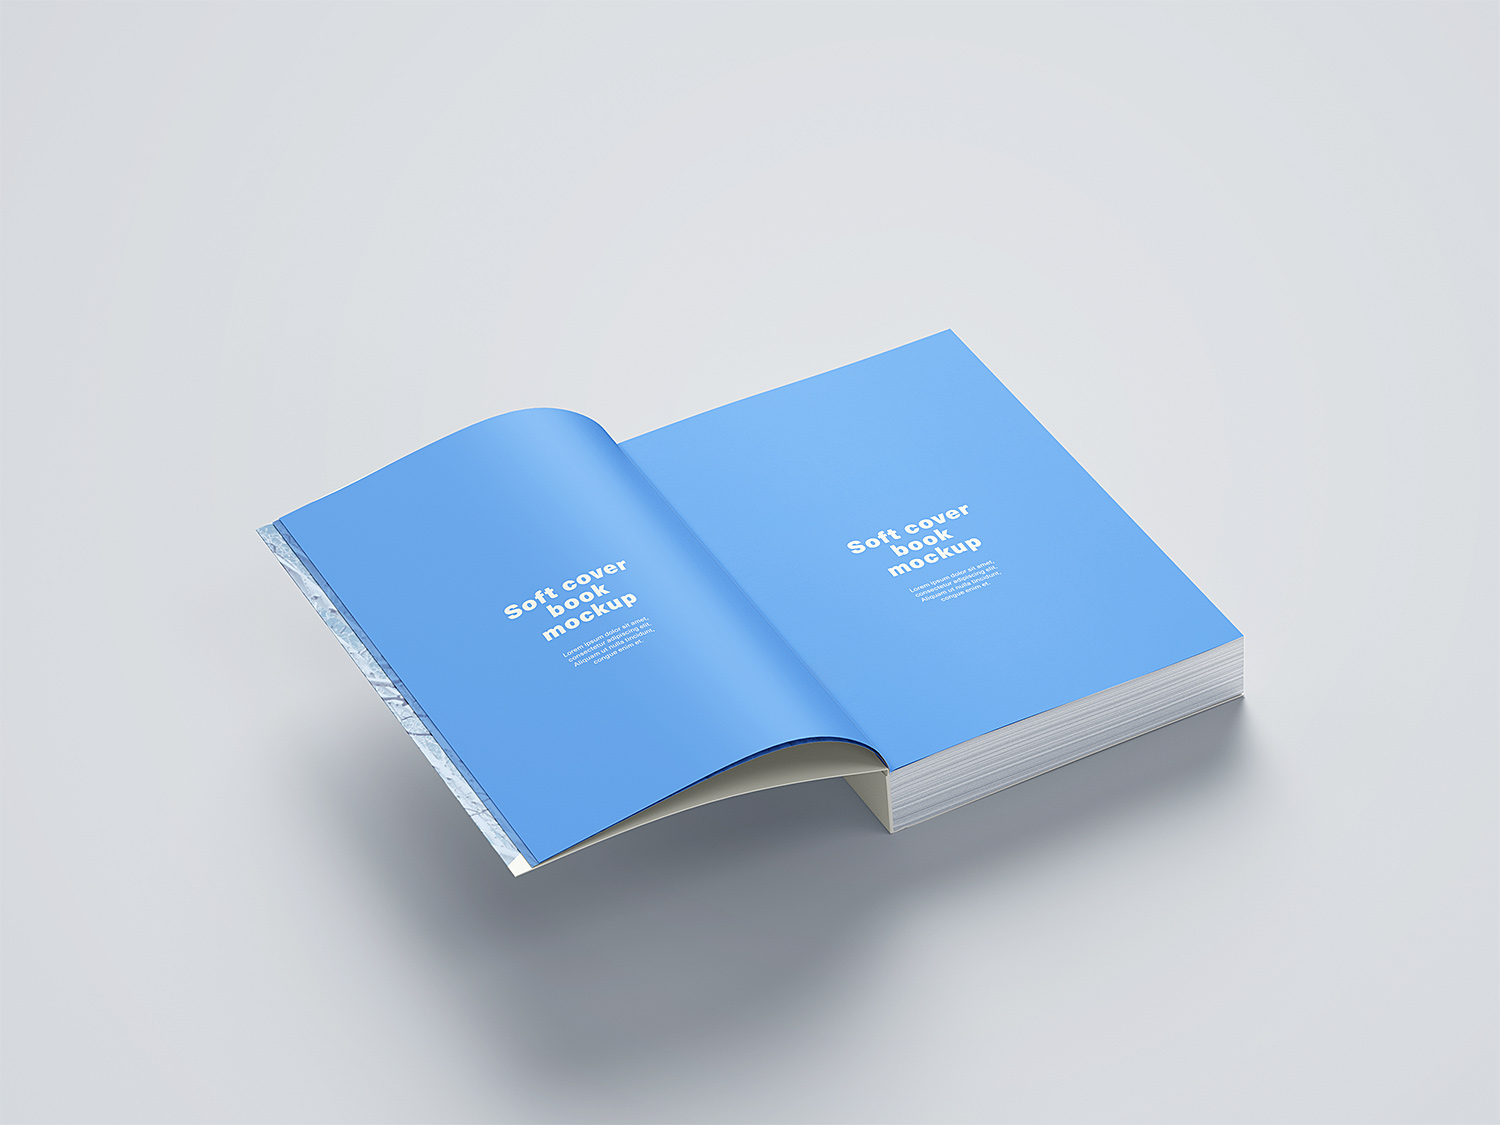 Free Softcover Book Mockup Set